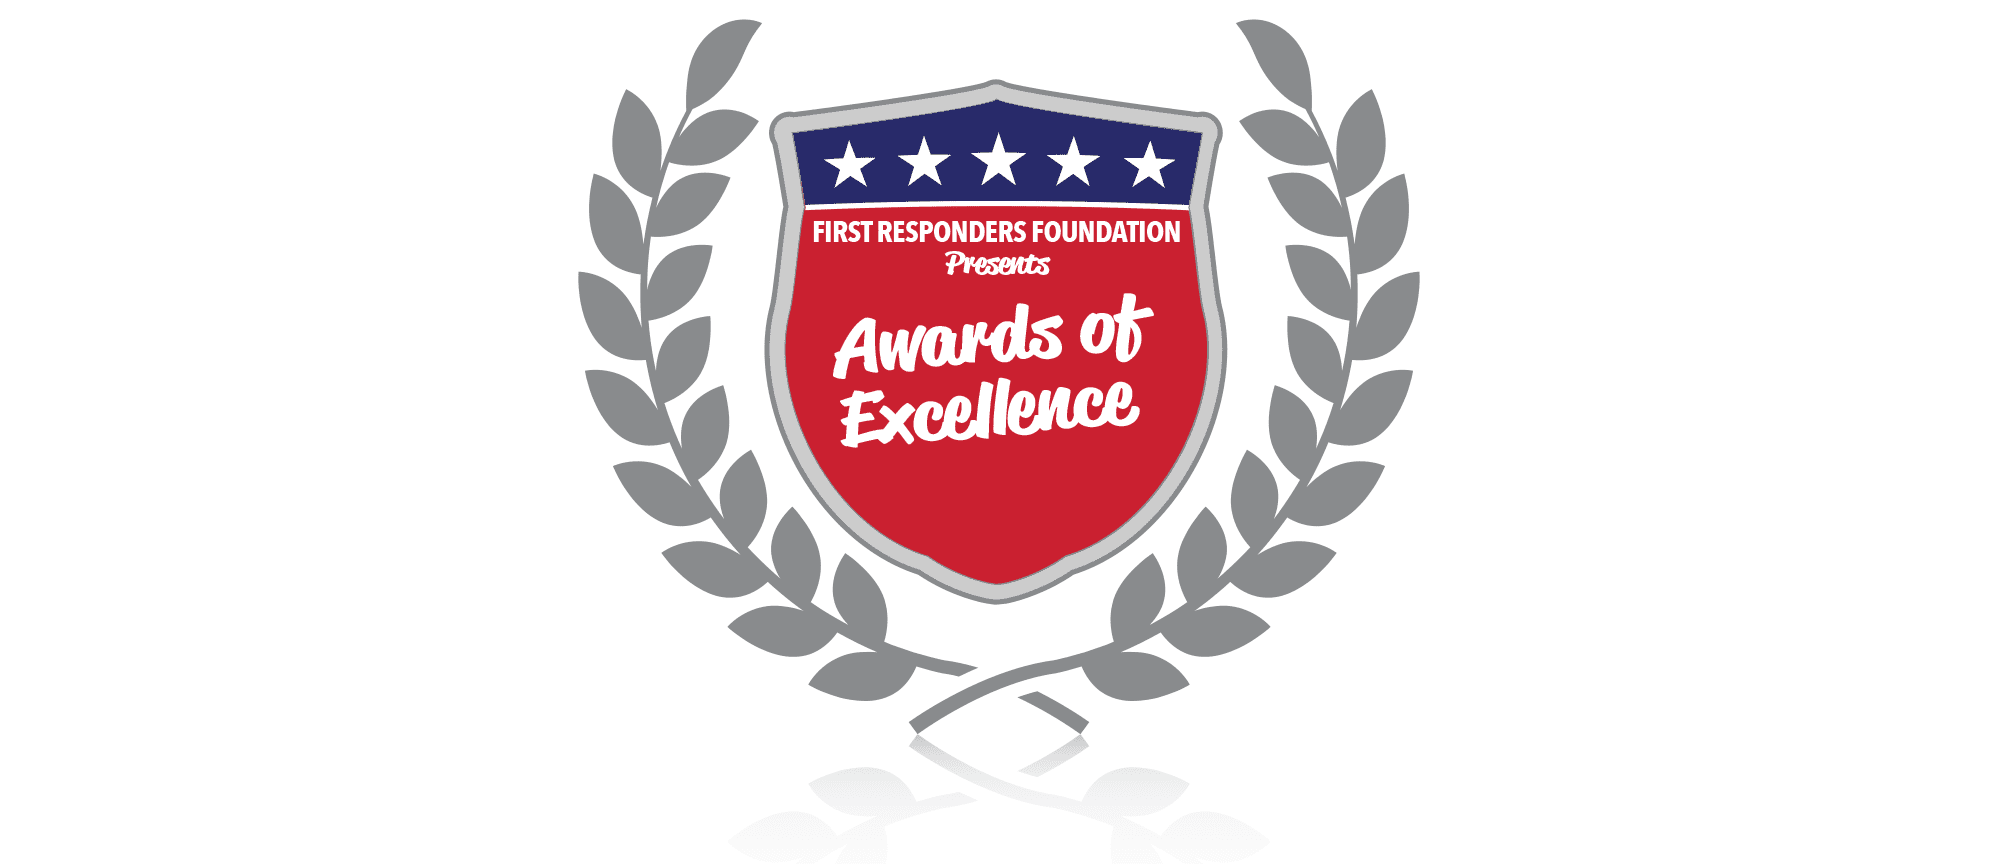 Awards of Excellence logo-1